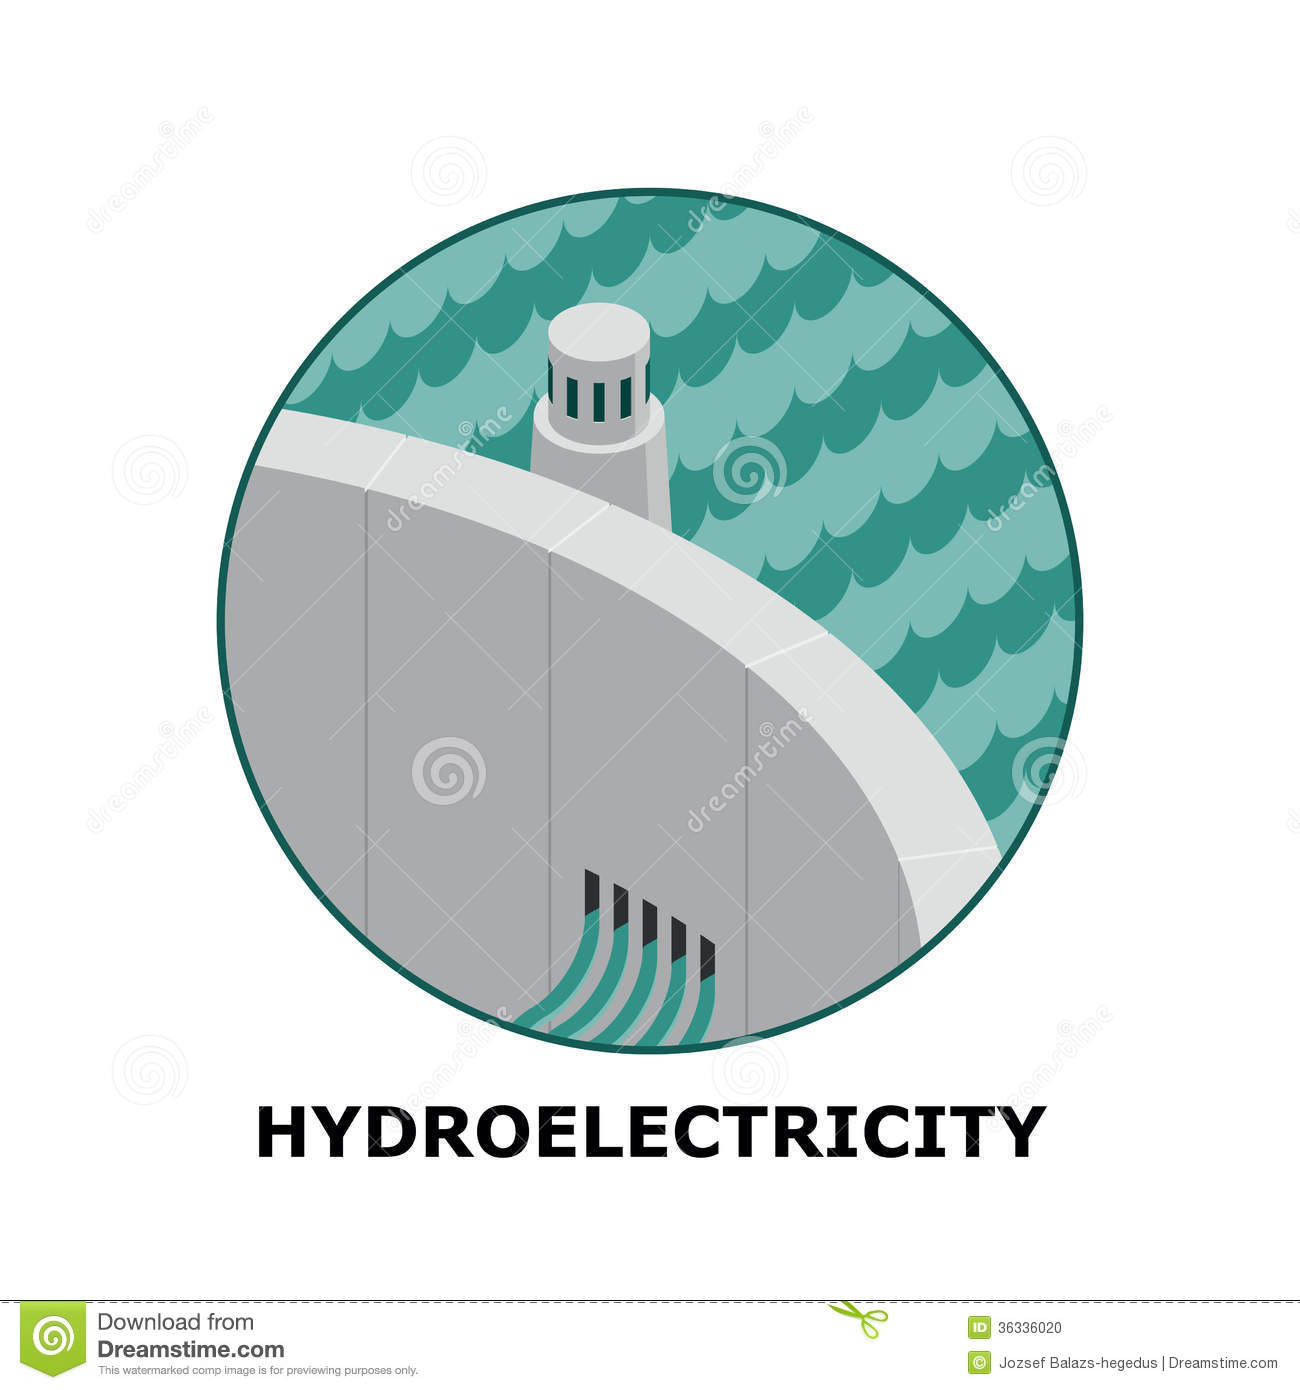 Hydroelectricity Stock Illustrations.